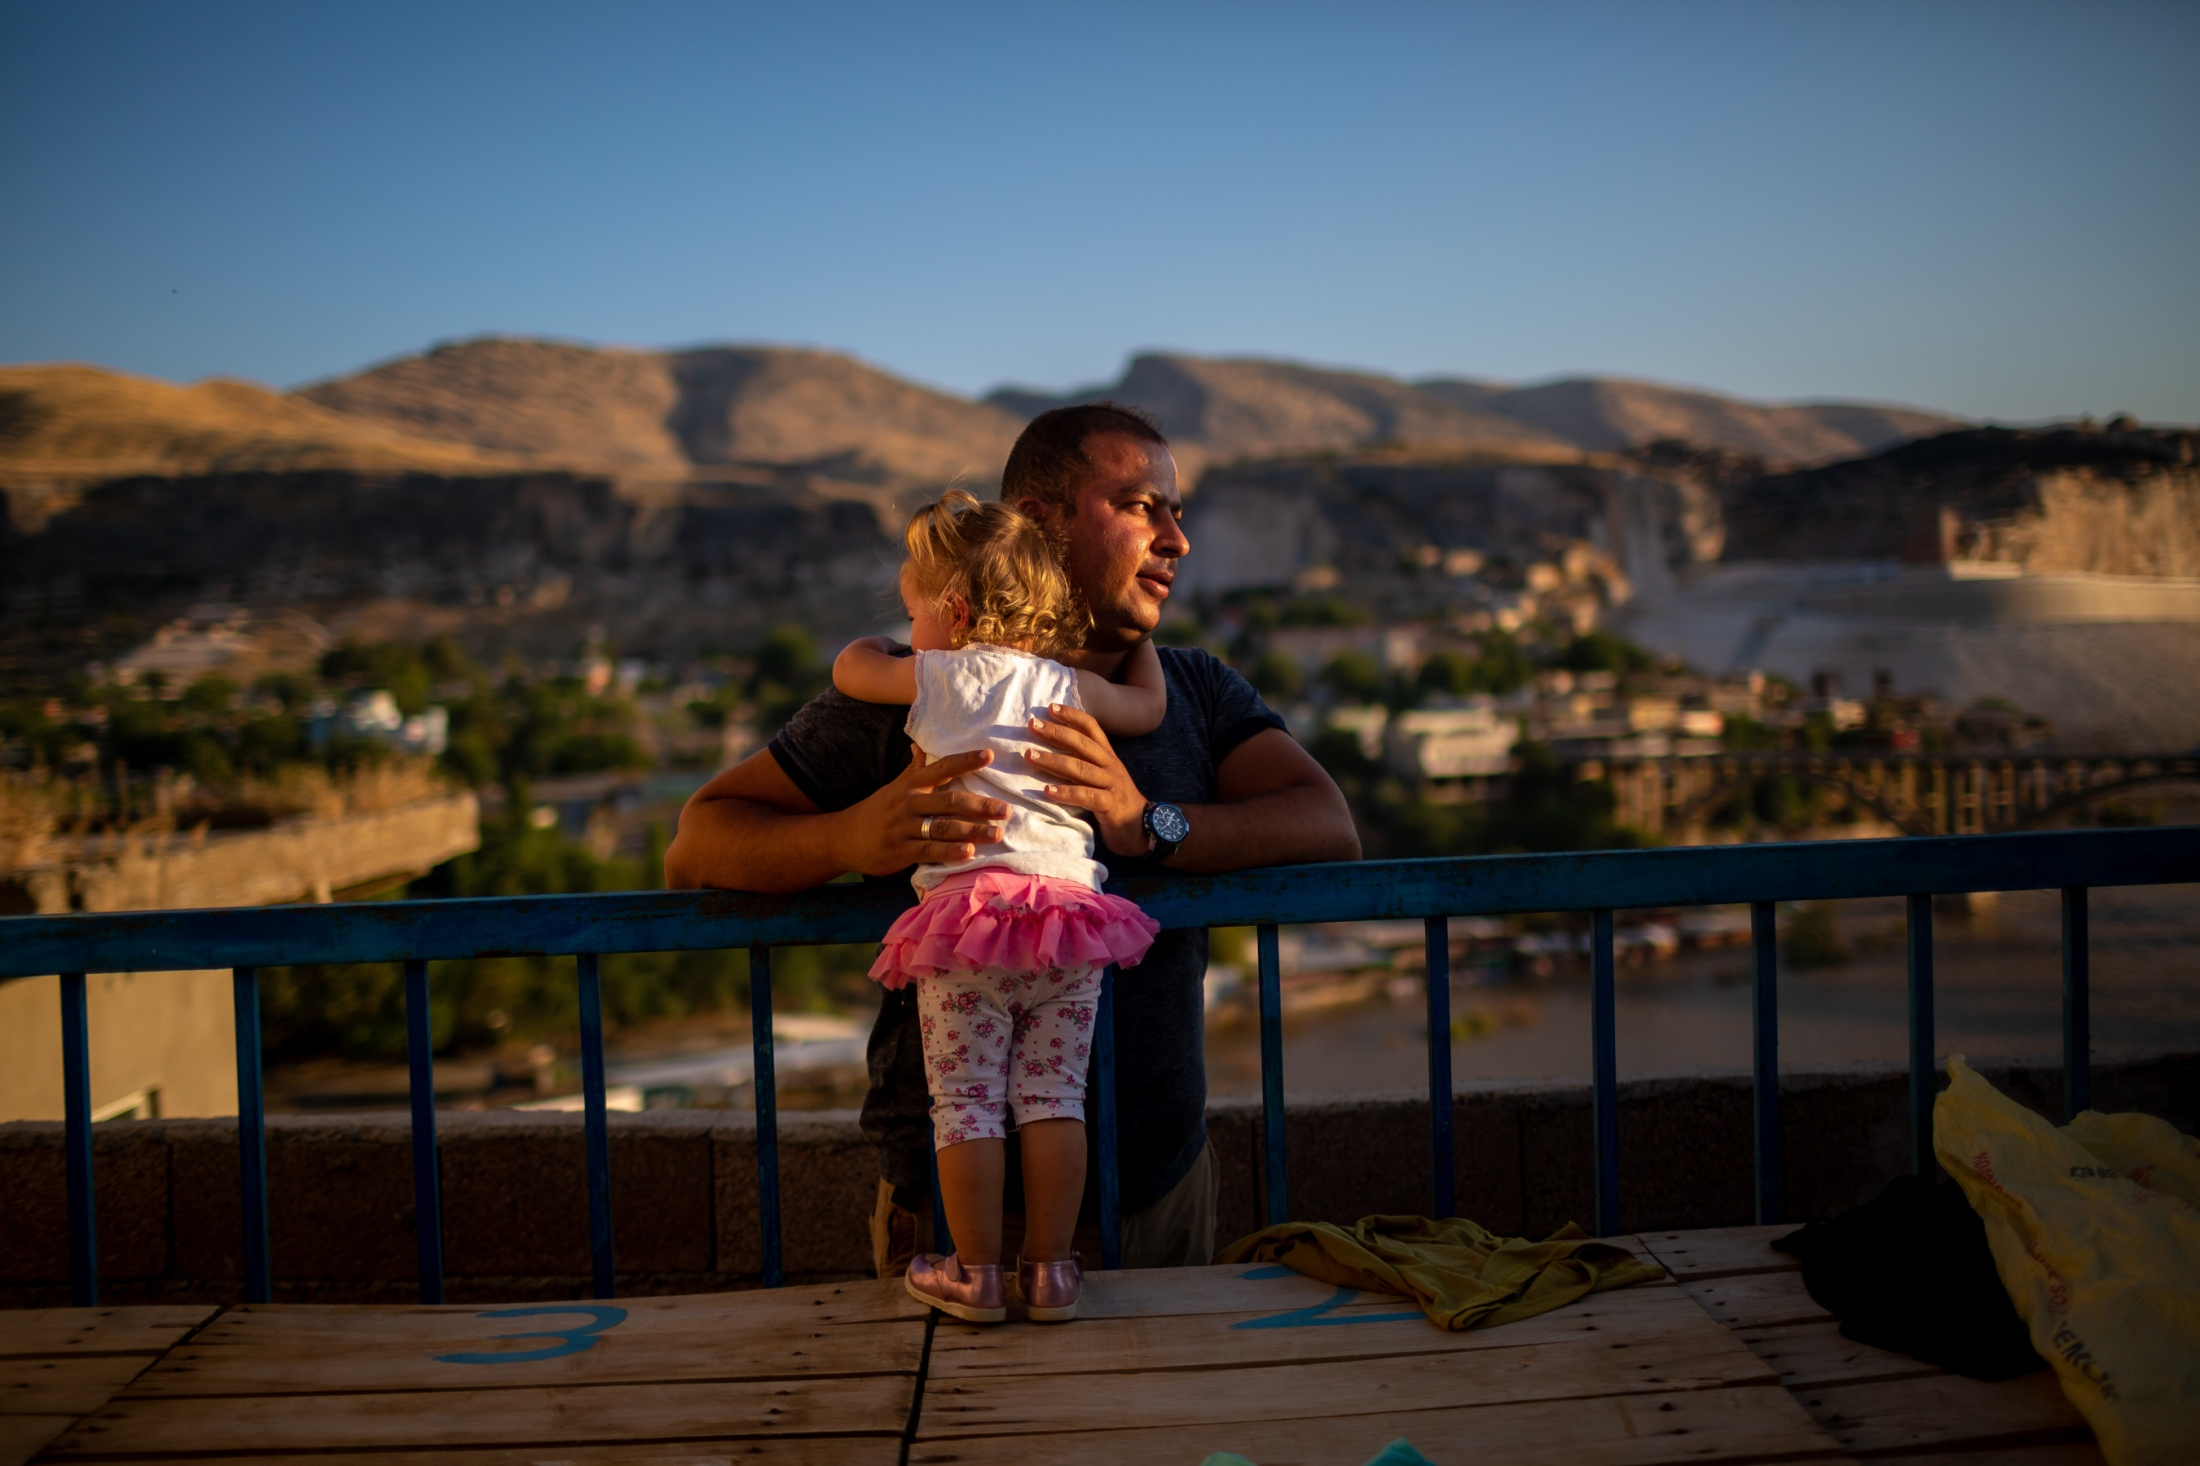 A father holds onto his young daughter in the village across Hasankeyf. While their village is not going to be submerged, due to destabilizing nature of the flood, they will have to move out of their village along with the residents of Hasankeyf. The future is unclear for these residents. As of early October 2019, the roads to Hasankeyf and surrounding villages will be closed.